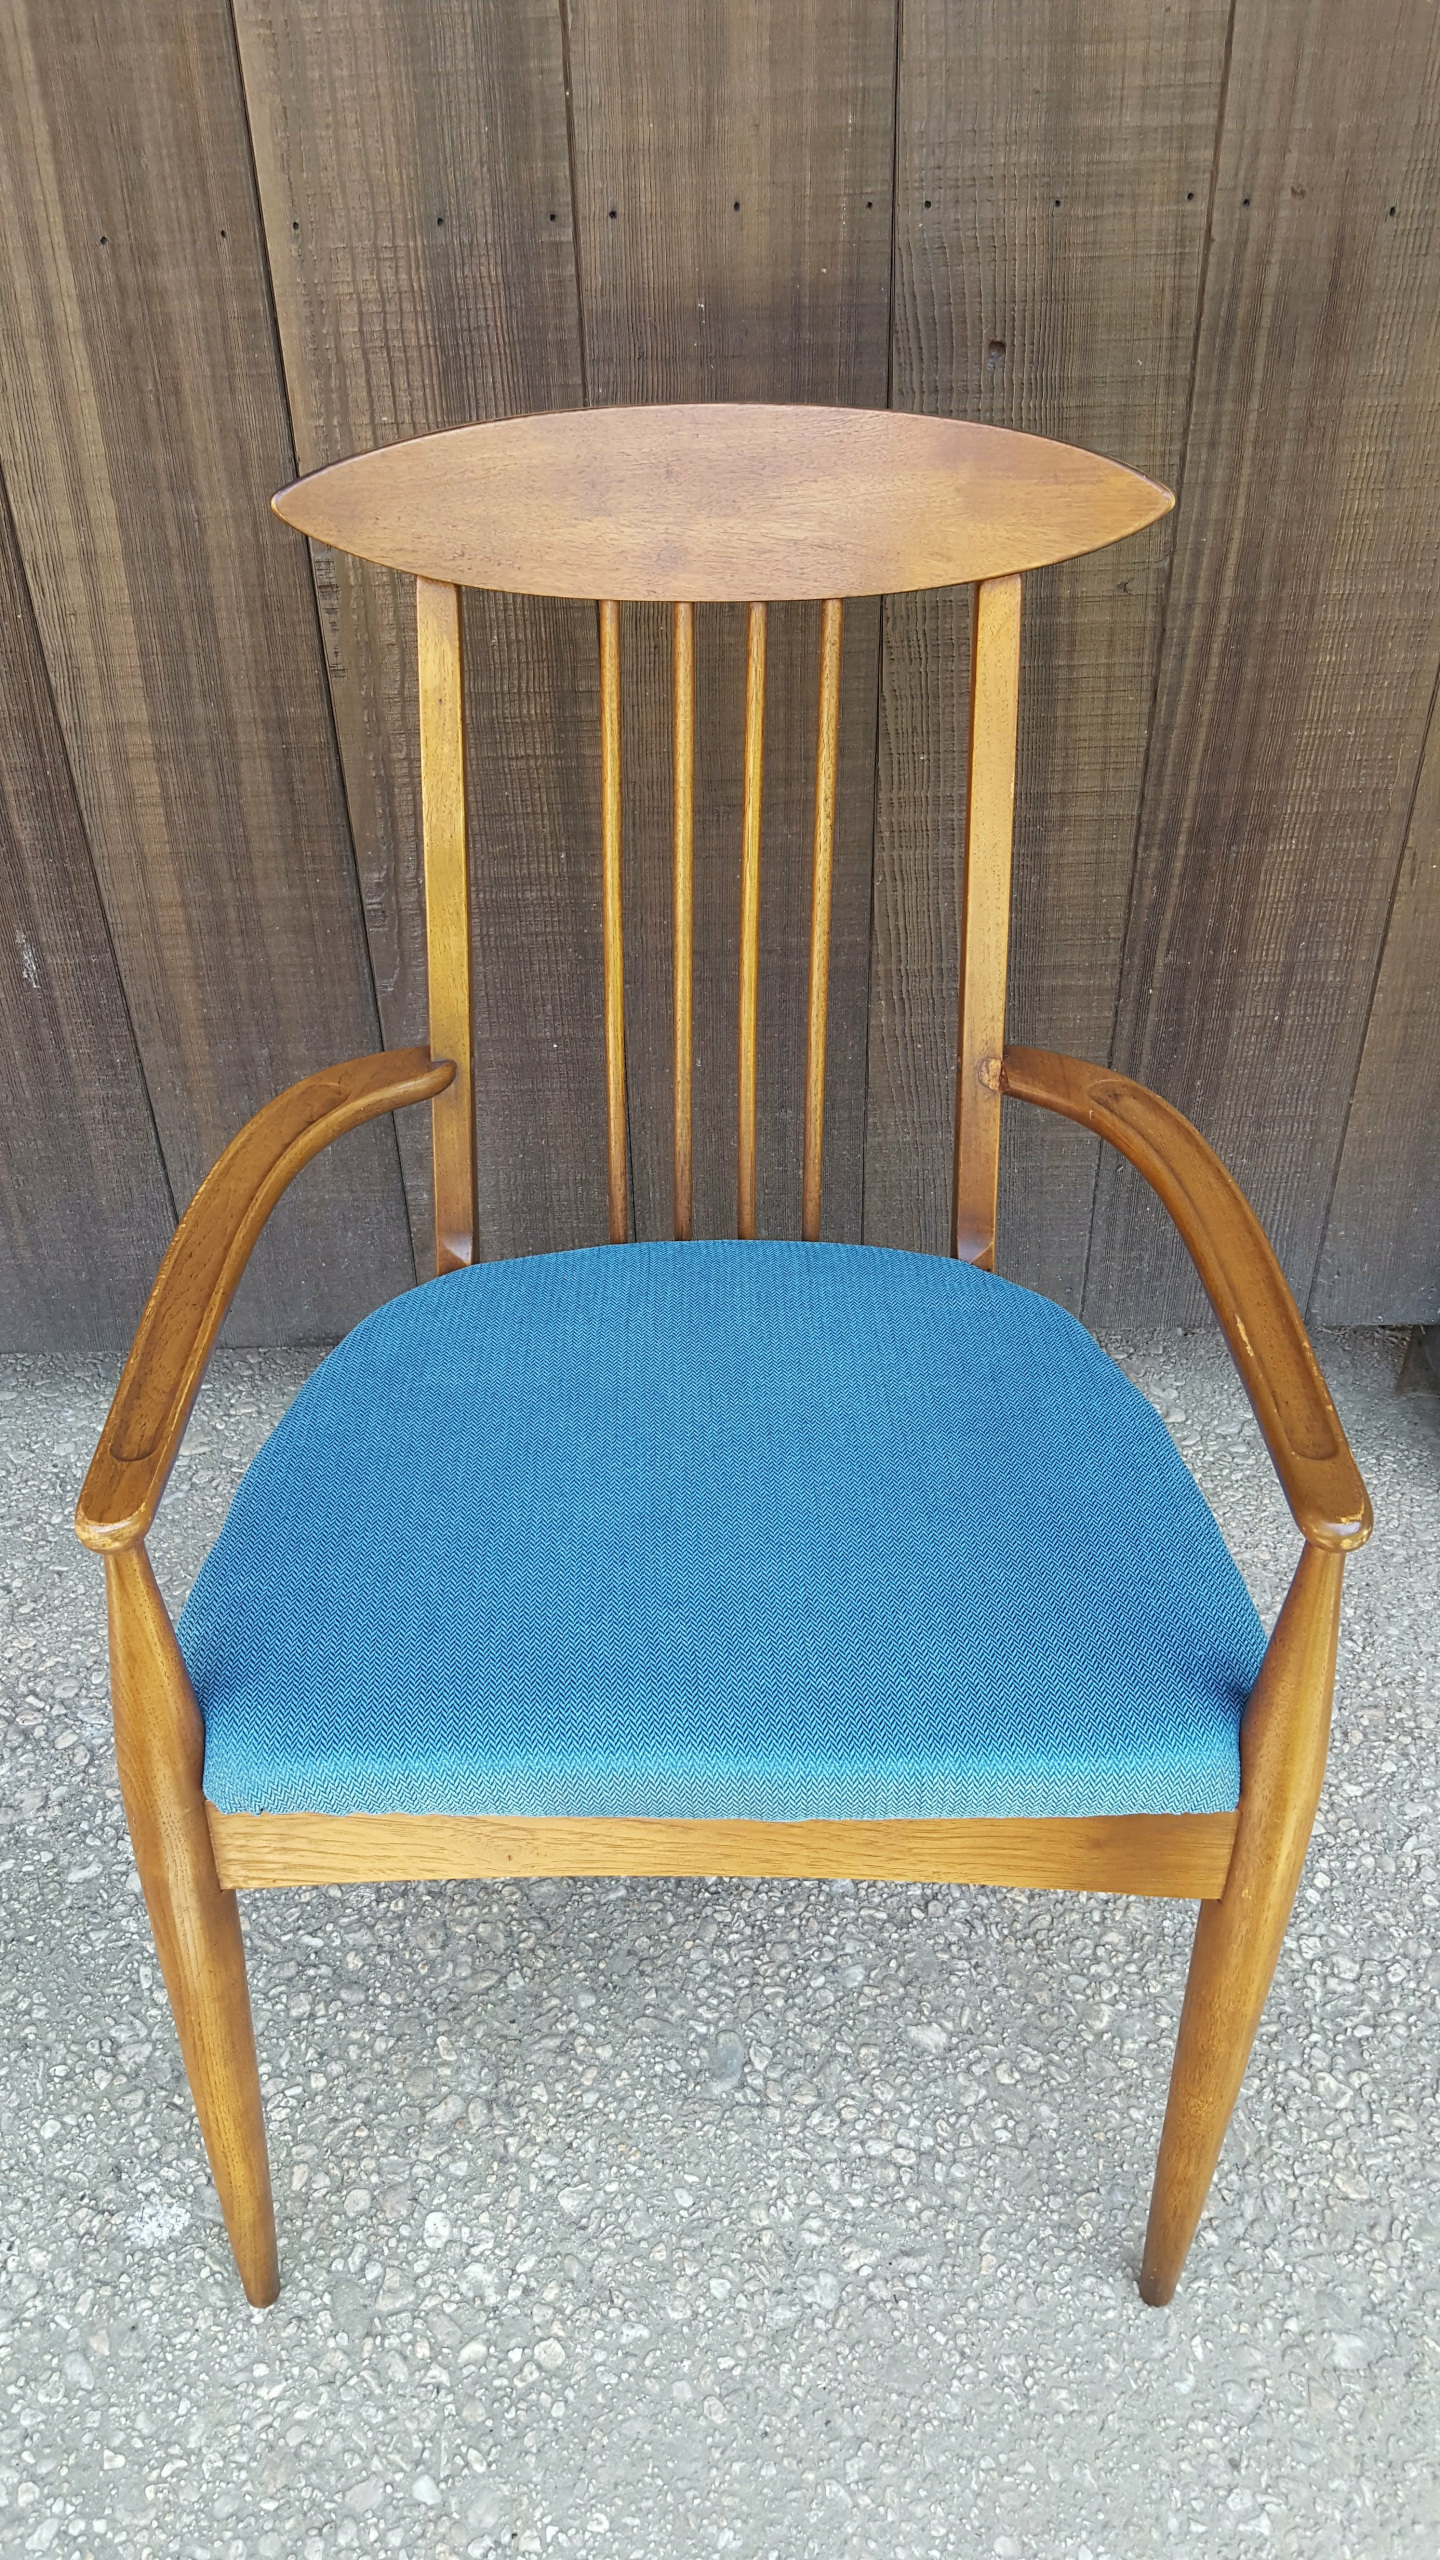 Set Of Six 6 Broyhill Sculptra Dining Chairs 5 Armless And 1 Captain Chair W New Turquoise Herring Bone Upholstered Seats